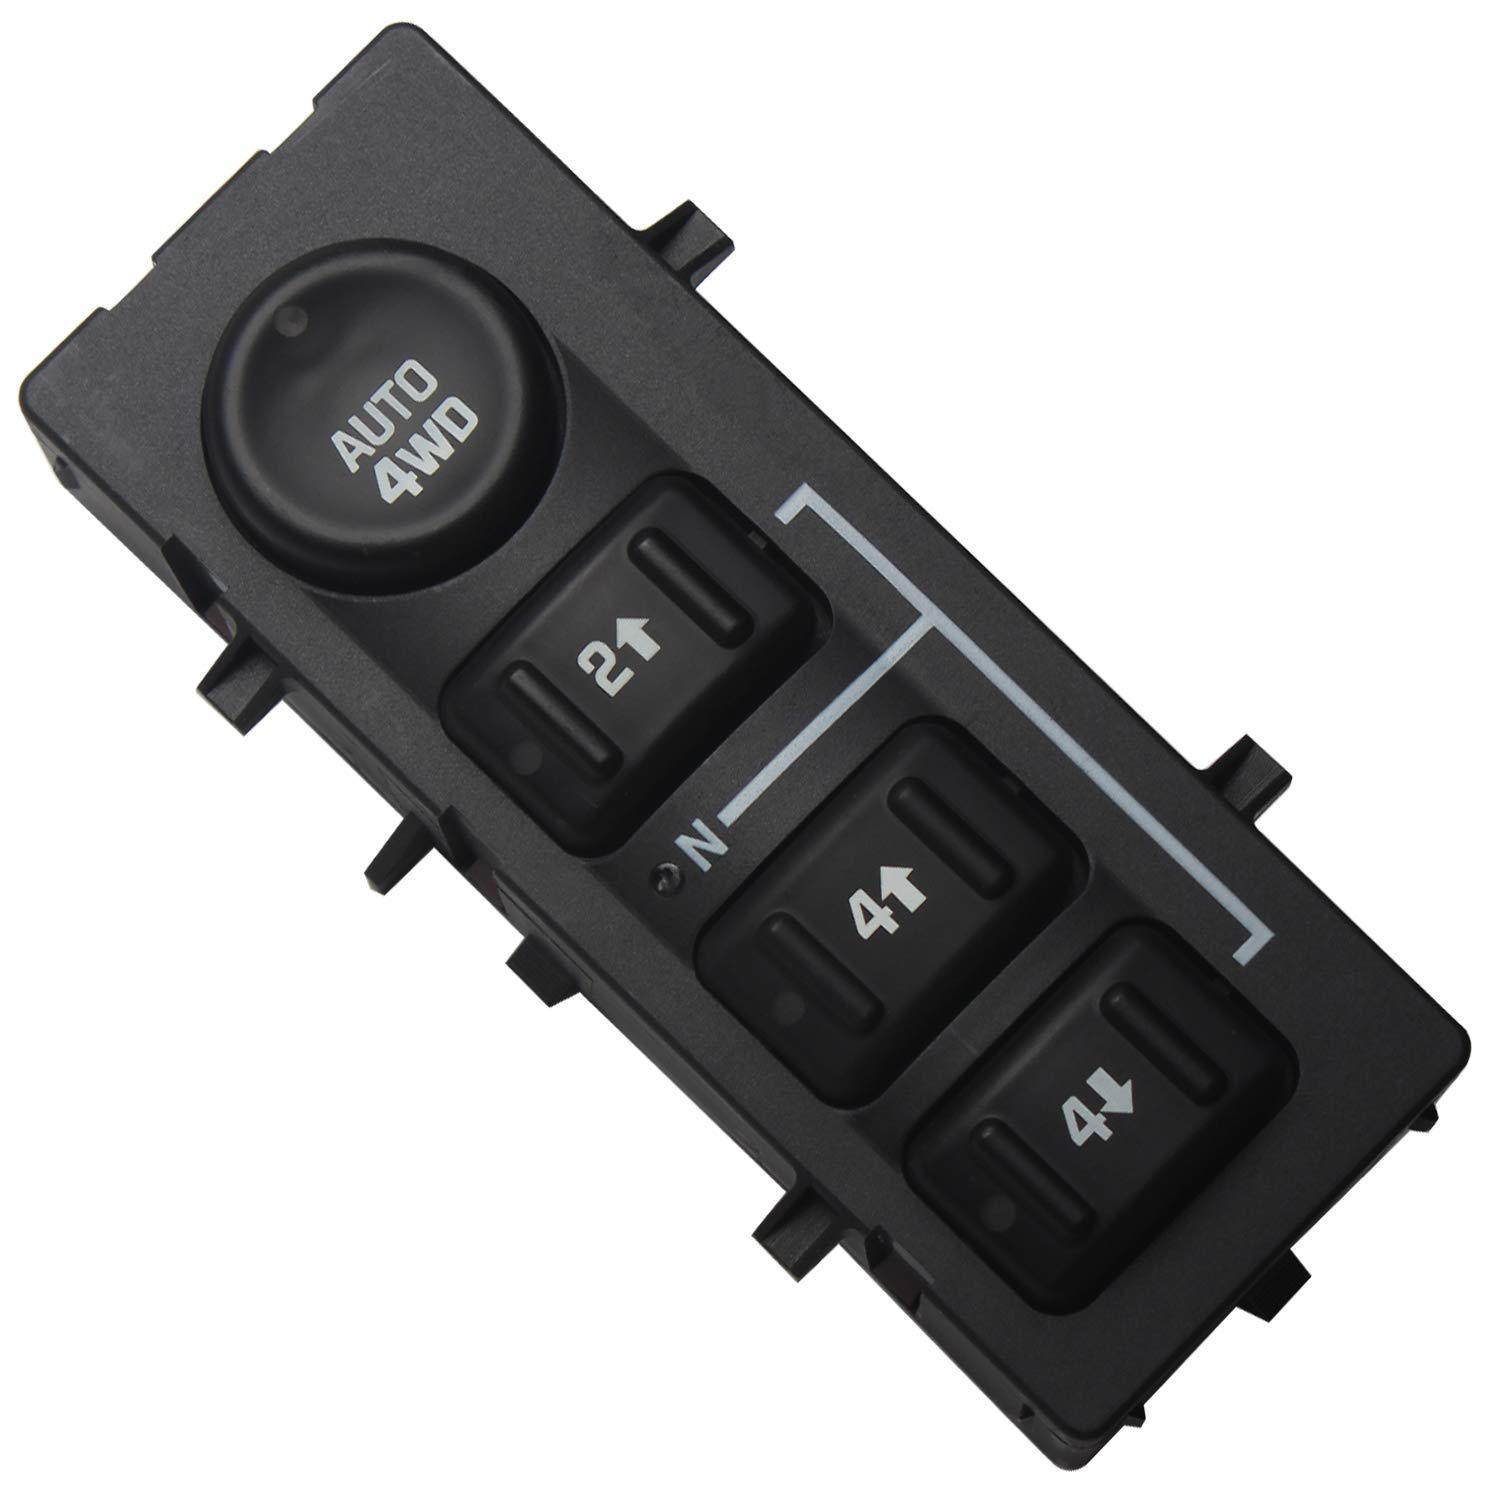 19259313 2006-2007 Cadillac Escalade 15136039 15164520 Beneges 4WD 4x4 Wheel Drive Switch Compatible with 2003-2006 Chevrolet Tahoe//Suburban//Avalanche//Silverado//GMC Yukon//GMC Yukon 1500 2500